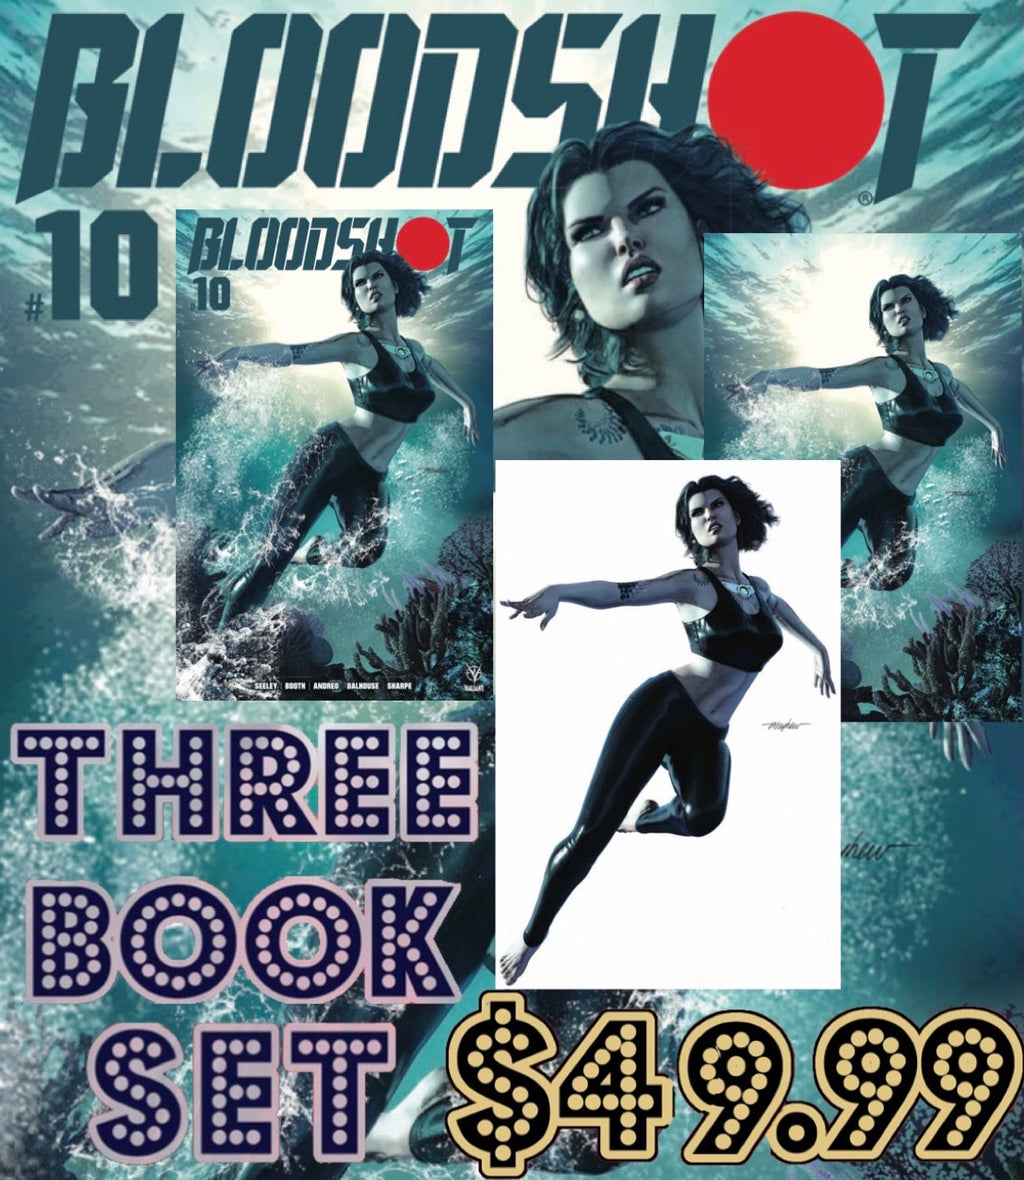 Bloodshot 10 Mayhew 3 Book Set